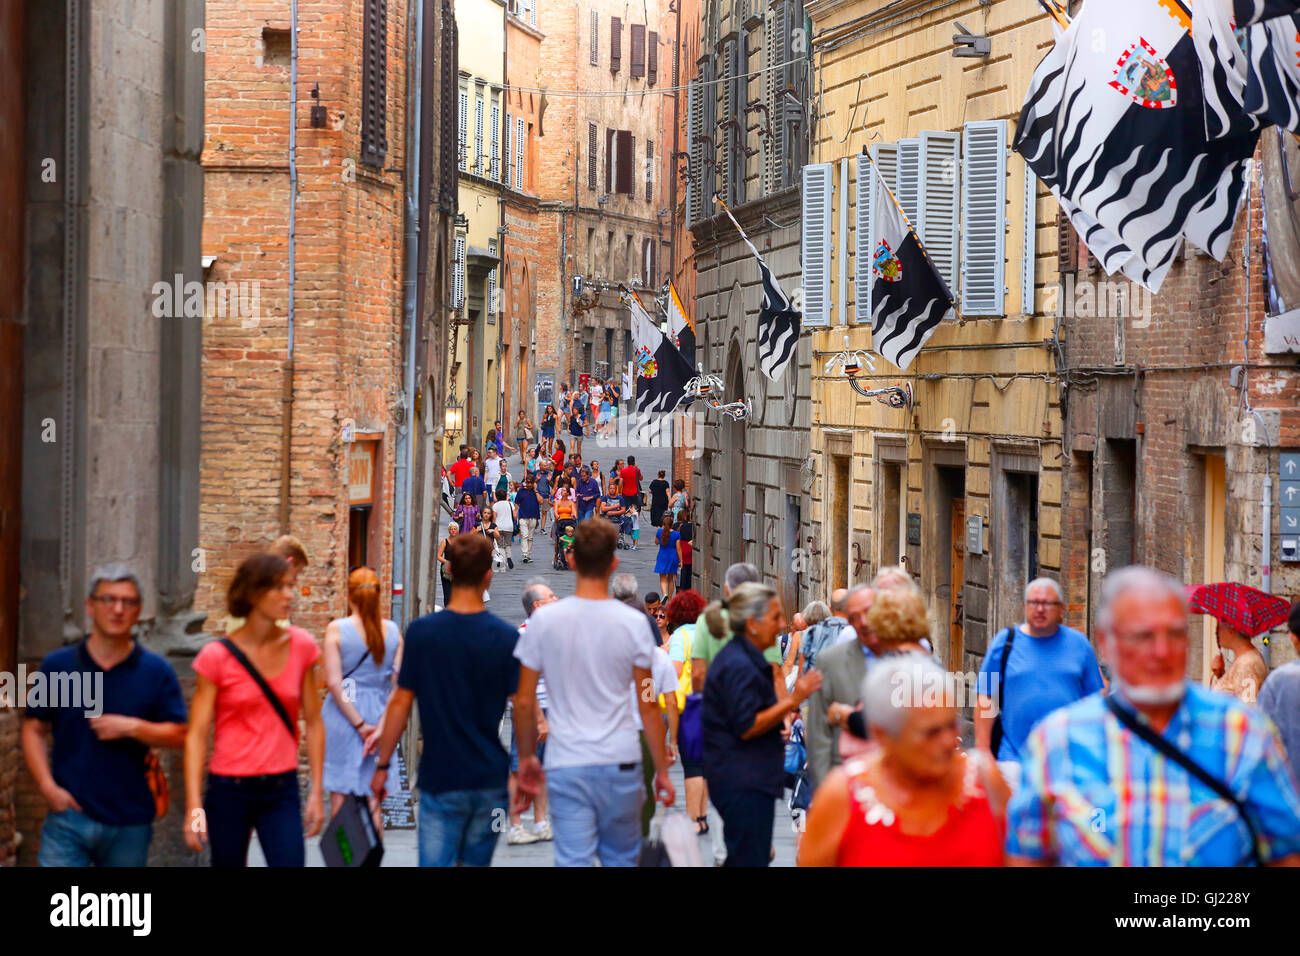 Pedestrians walk along Via Montanini in Siena, Italy. - Stock Image